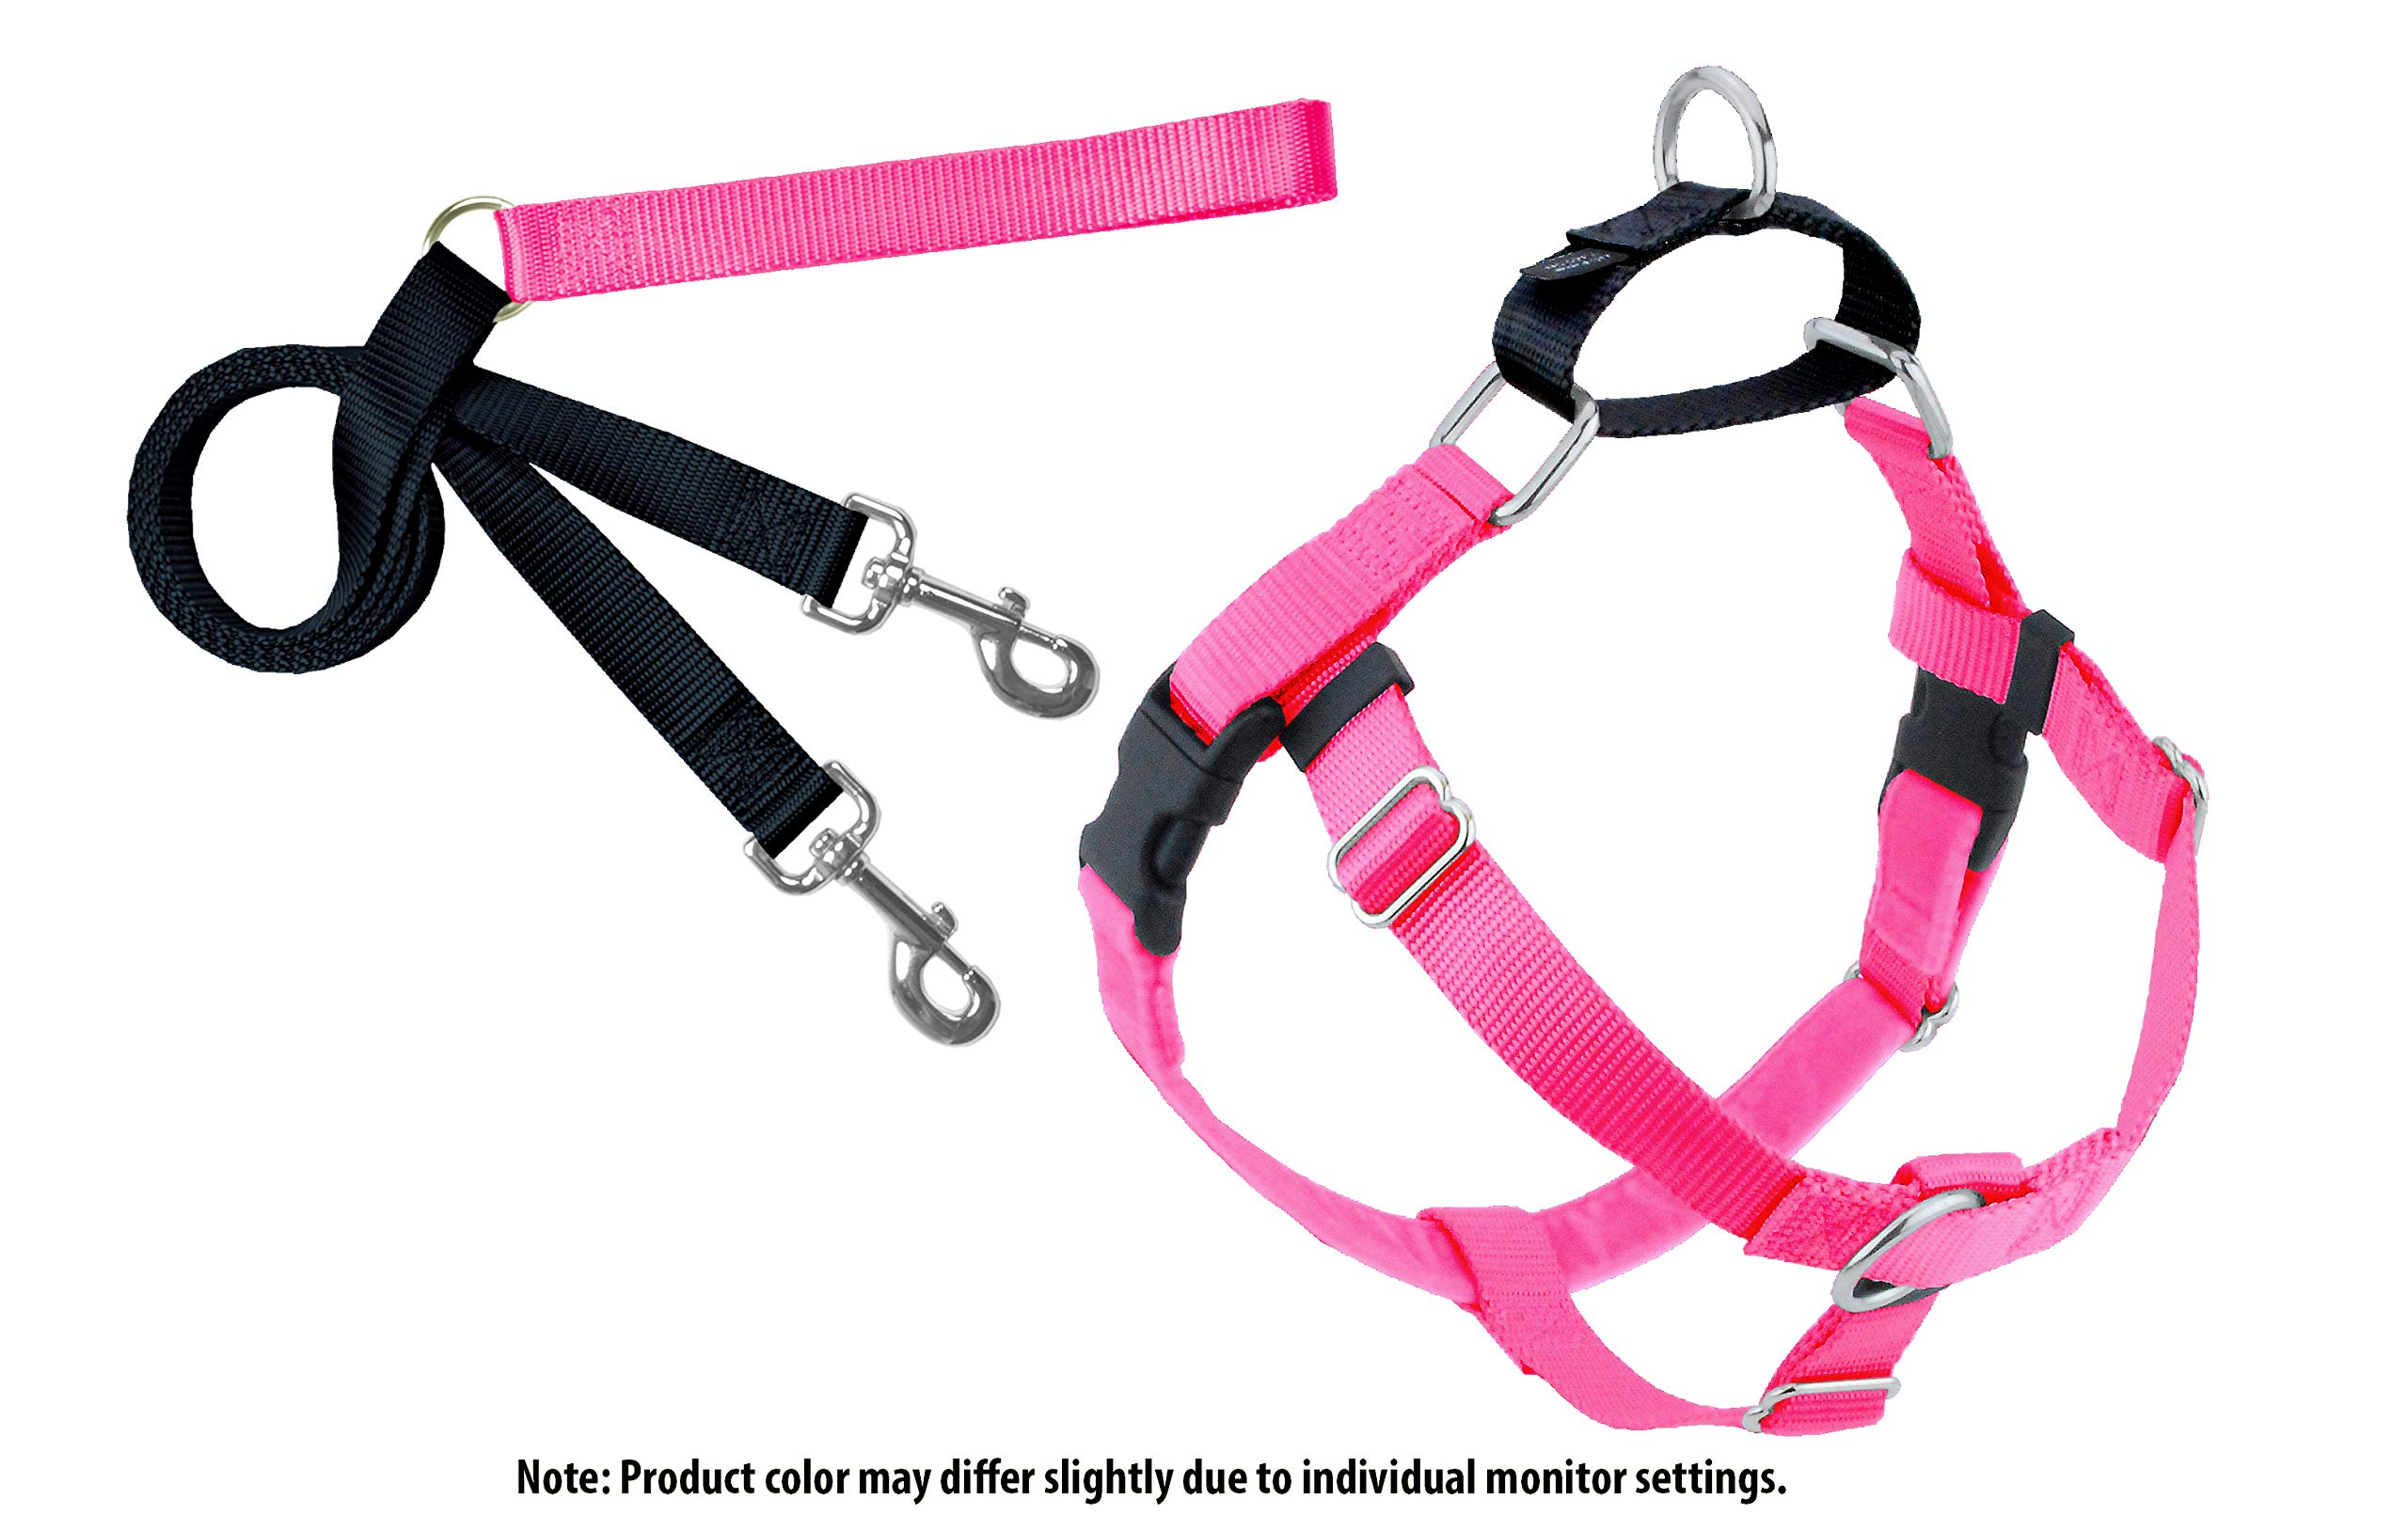 2 Hounds Design Freedom No-Pull Dog Harness and Leash, Adjustable Comfortable Control for Dog Walking, Made in USA (Medium 1'') (Hot Pink)